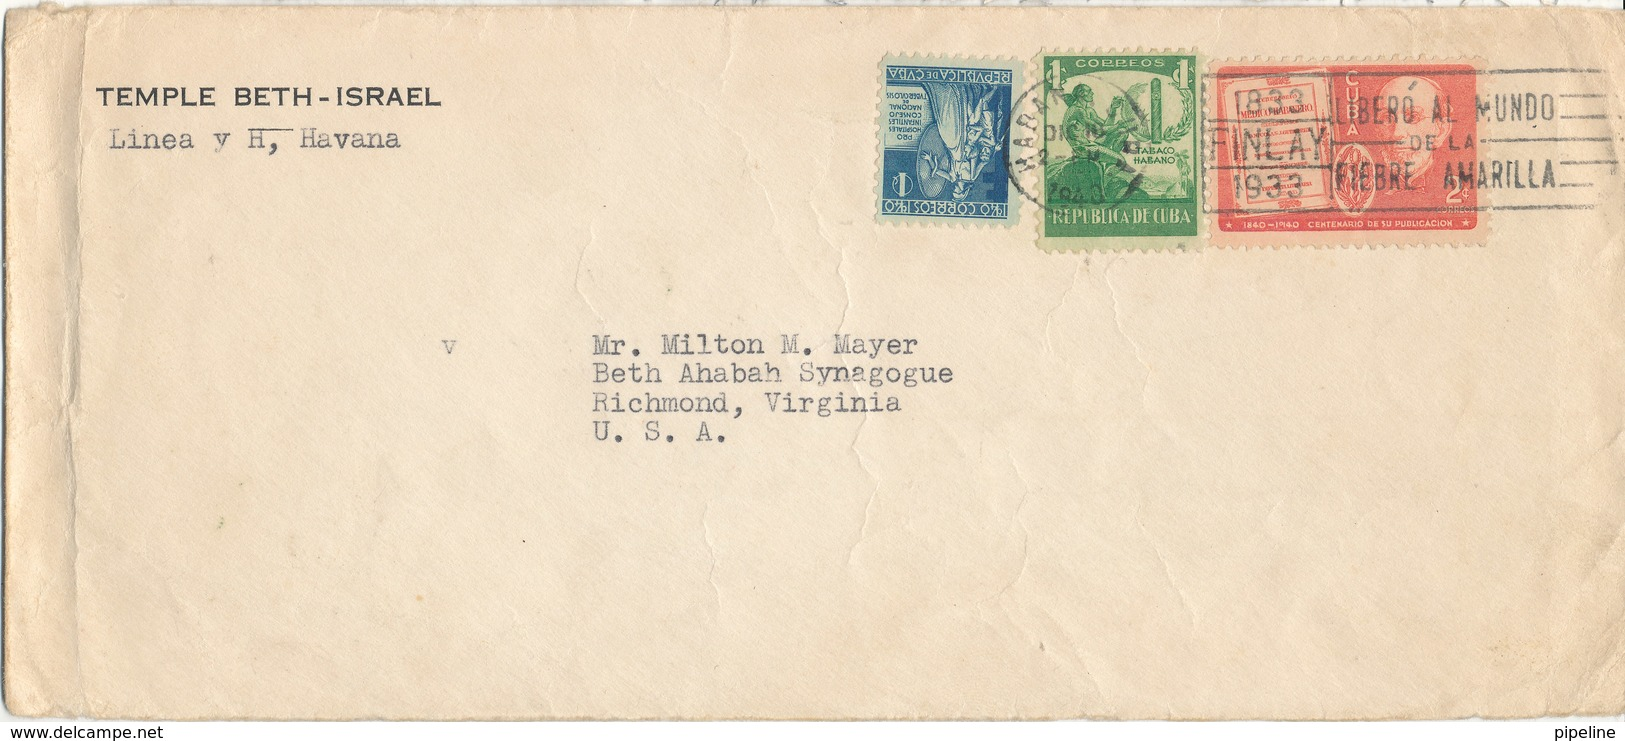 Cuba Cover (TEMPLE BETH - ISRAEL) Sent To USA Habana 16-12-1940 - Covers & Documents